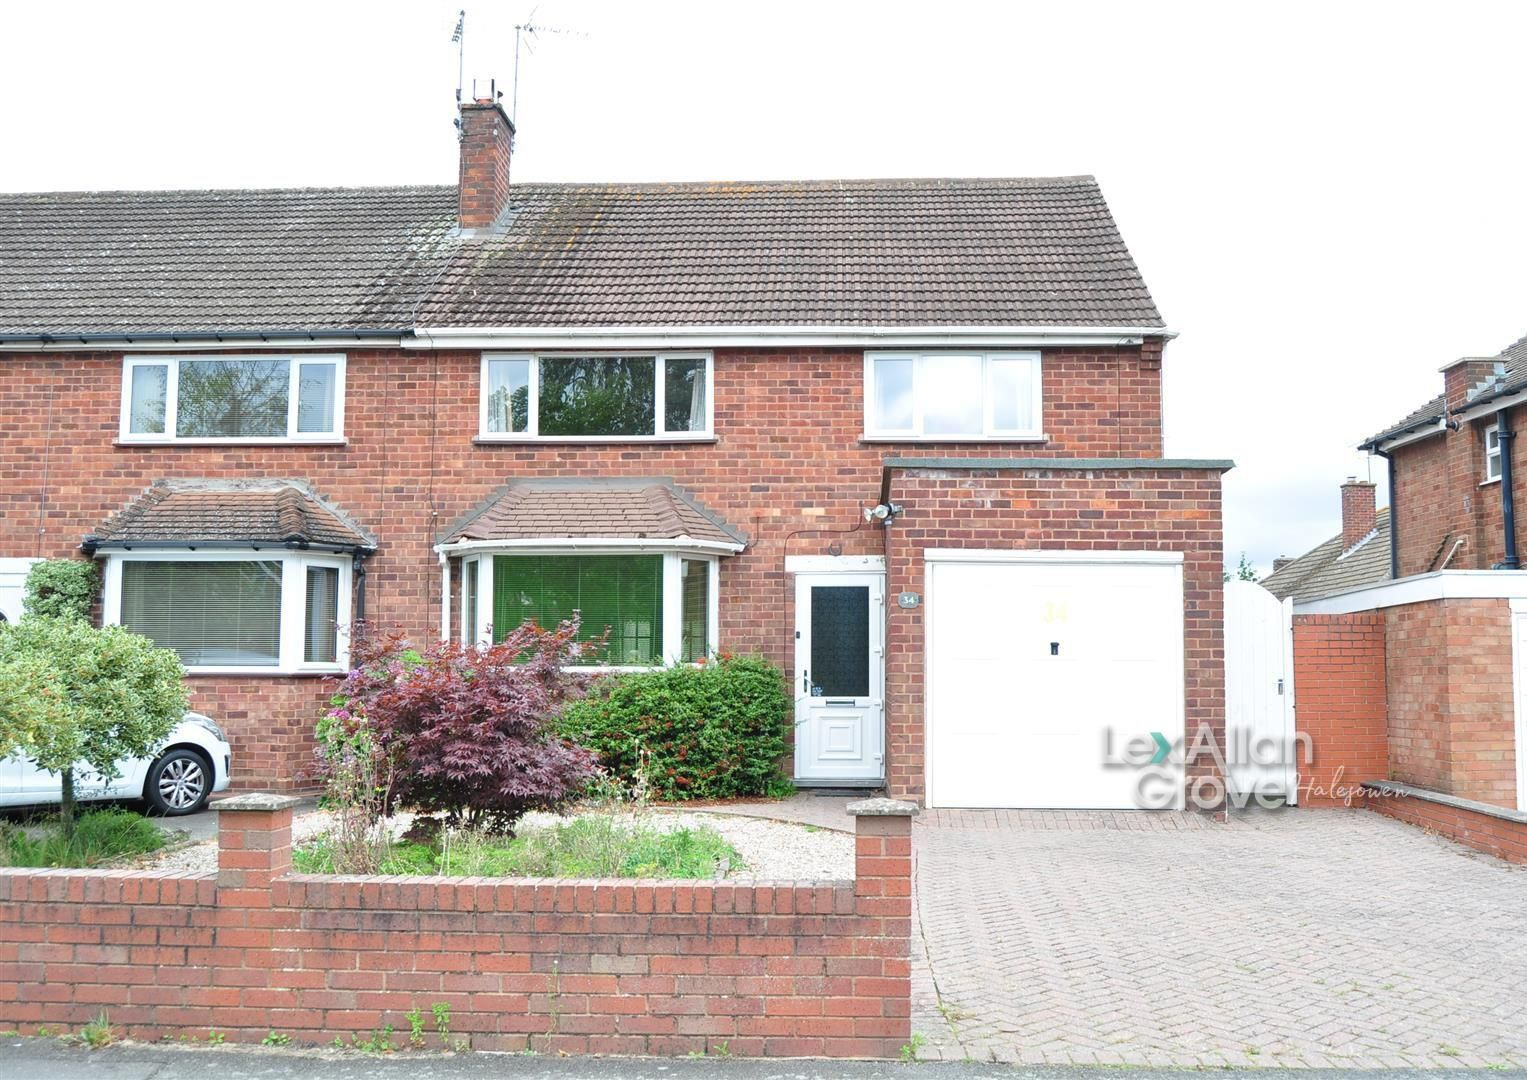 3 bed semi-detached for sale in Hayley Green, B63